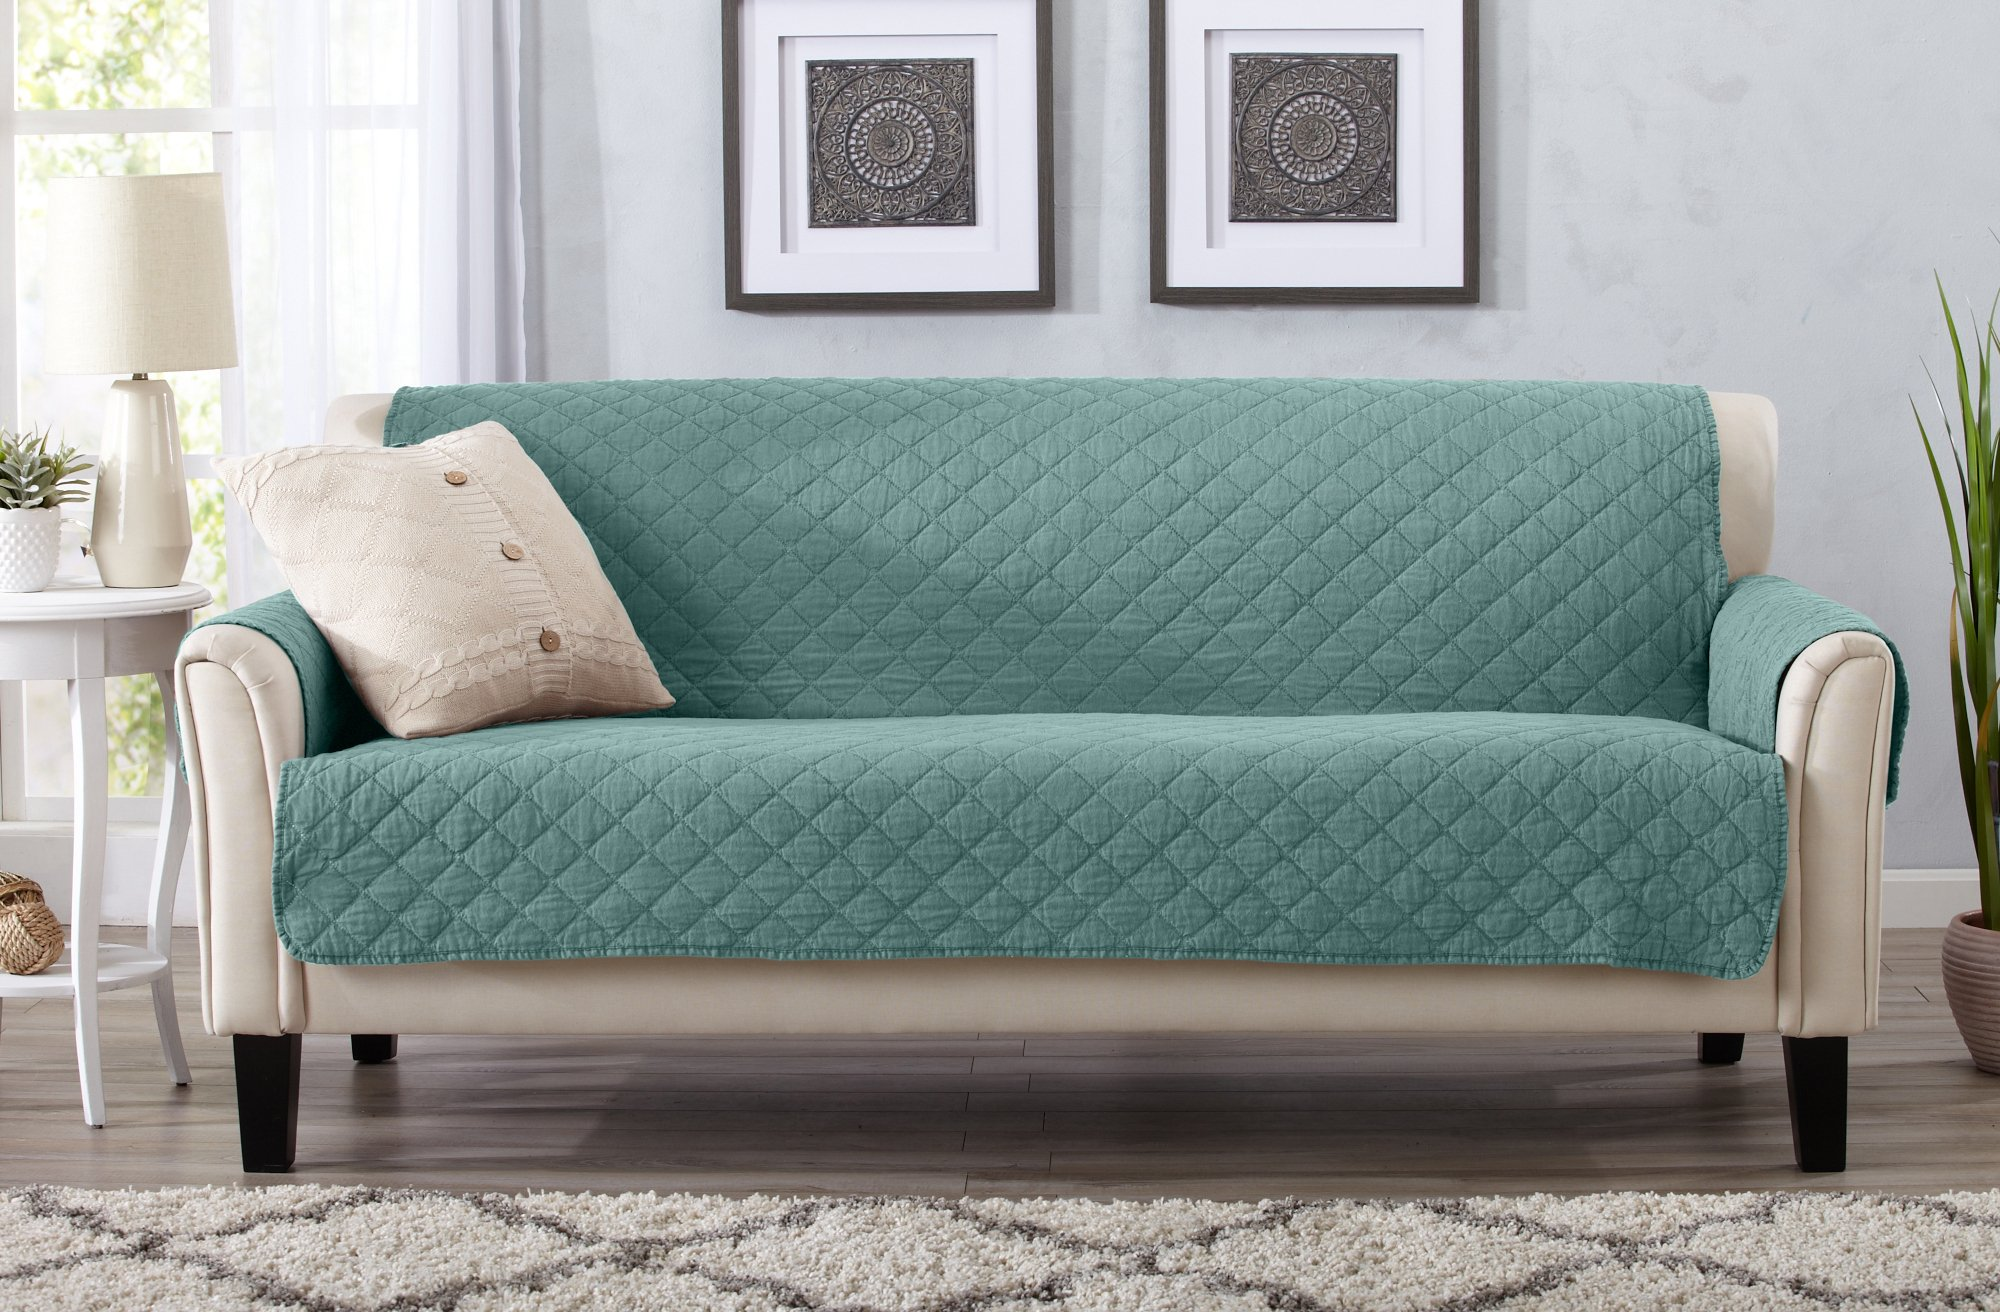 Great Bay Home Deluxe Stonewashed Stain Resistant Furniture Protector in Solid Colors. Laurina Collection By Brand. (Sofa, Aqua)